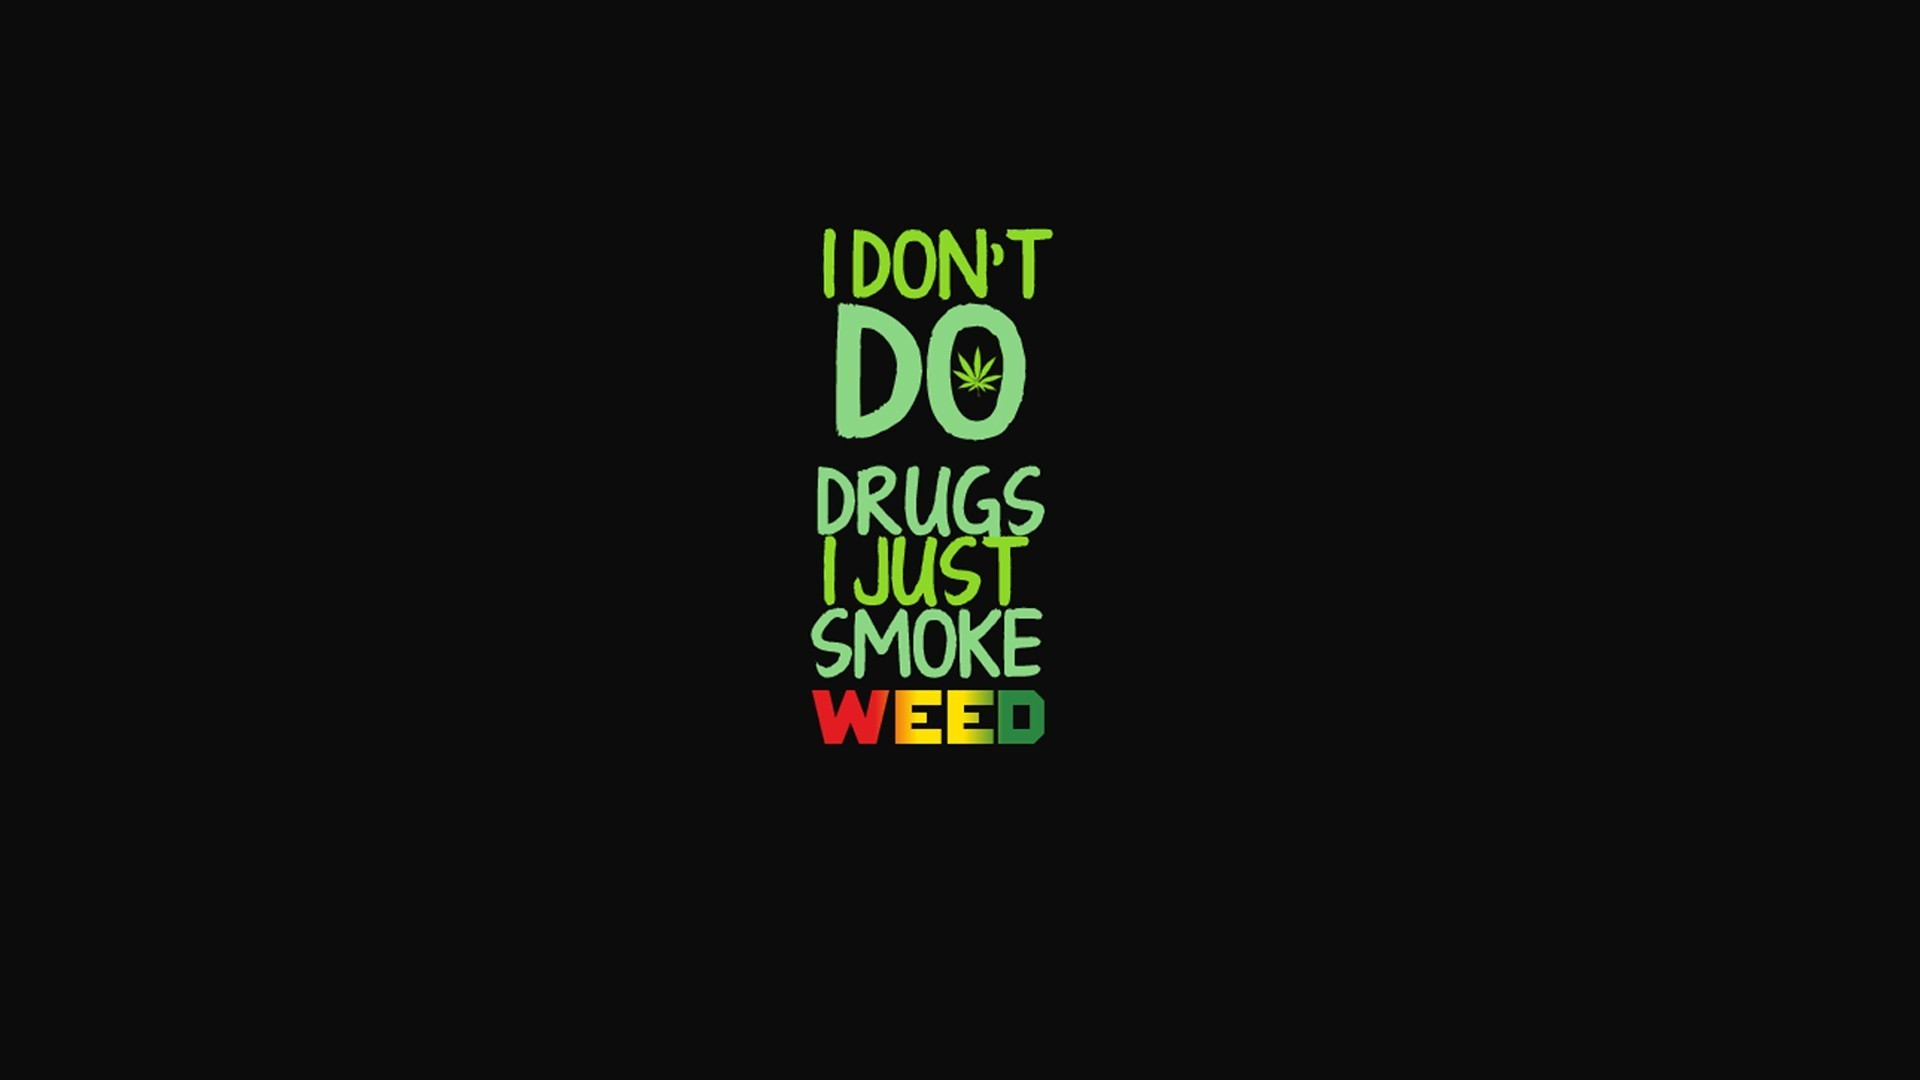 Weed Wallpaper Quotes Weed wallpaper quotes weed 1920x1080